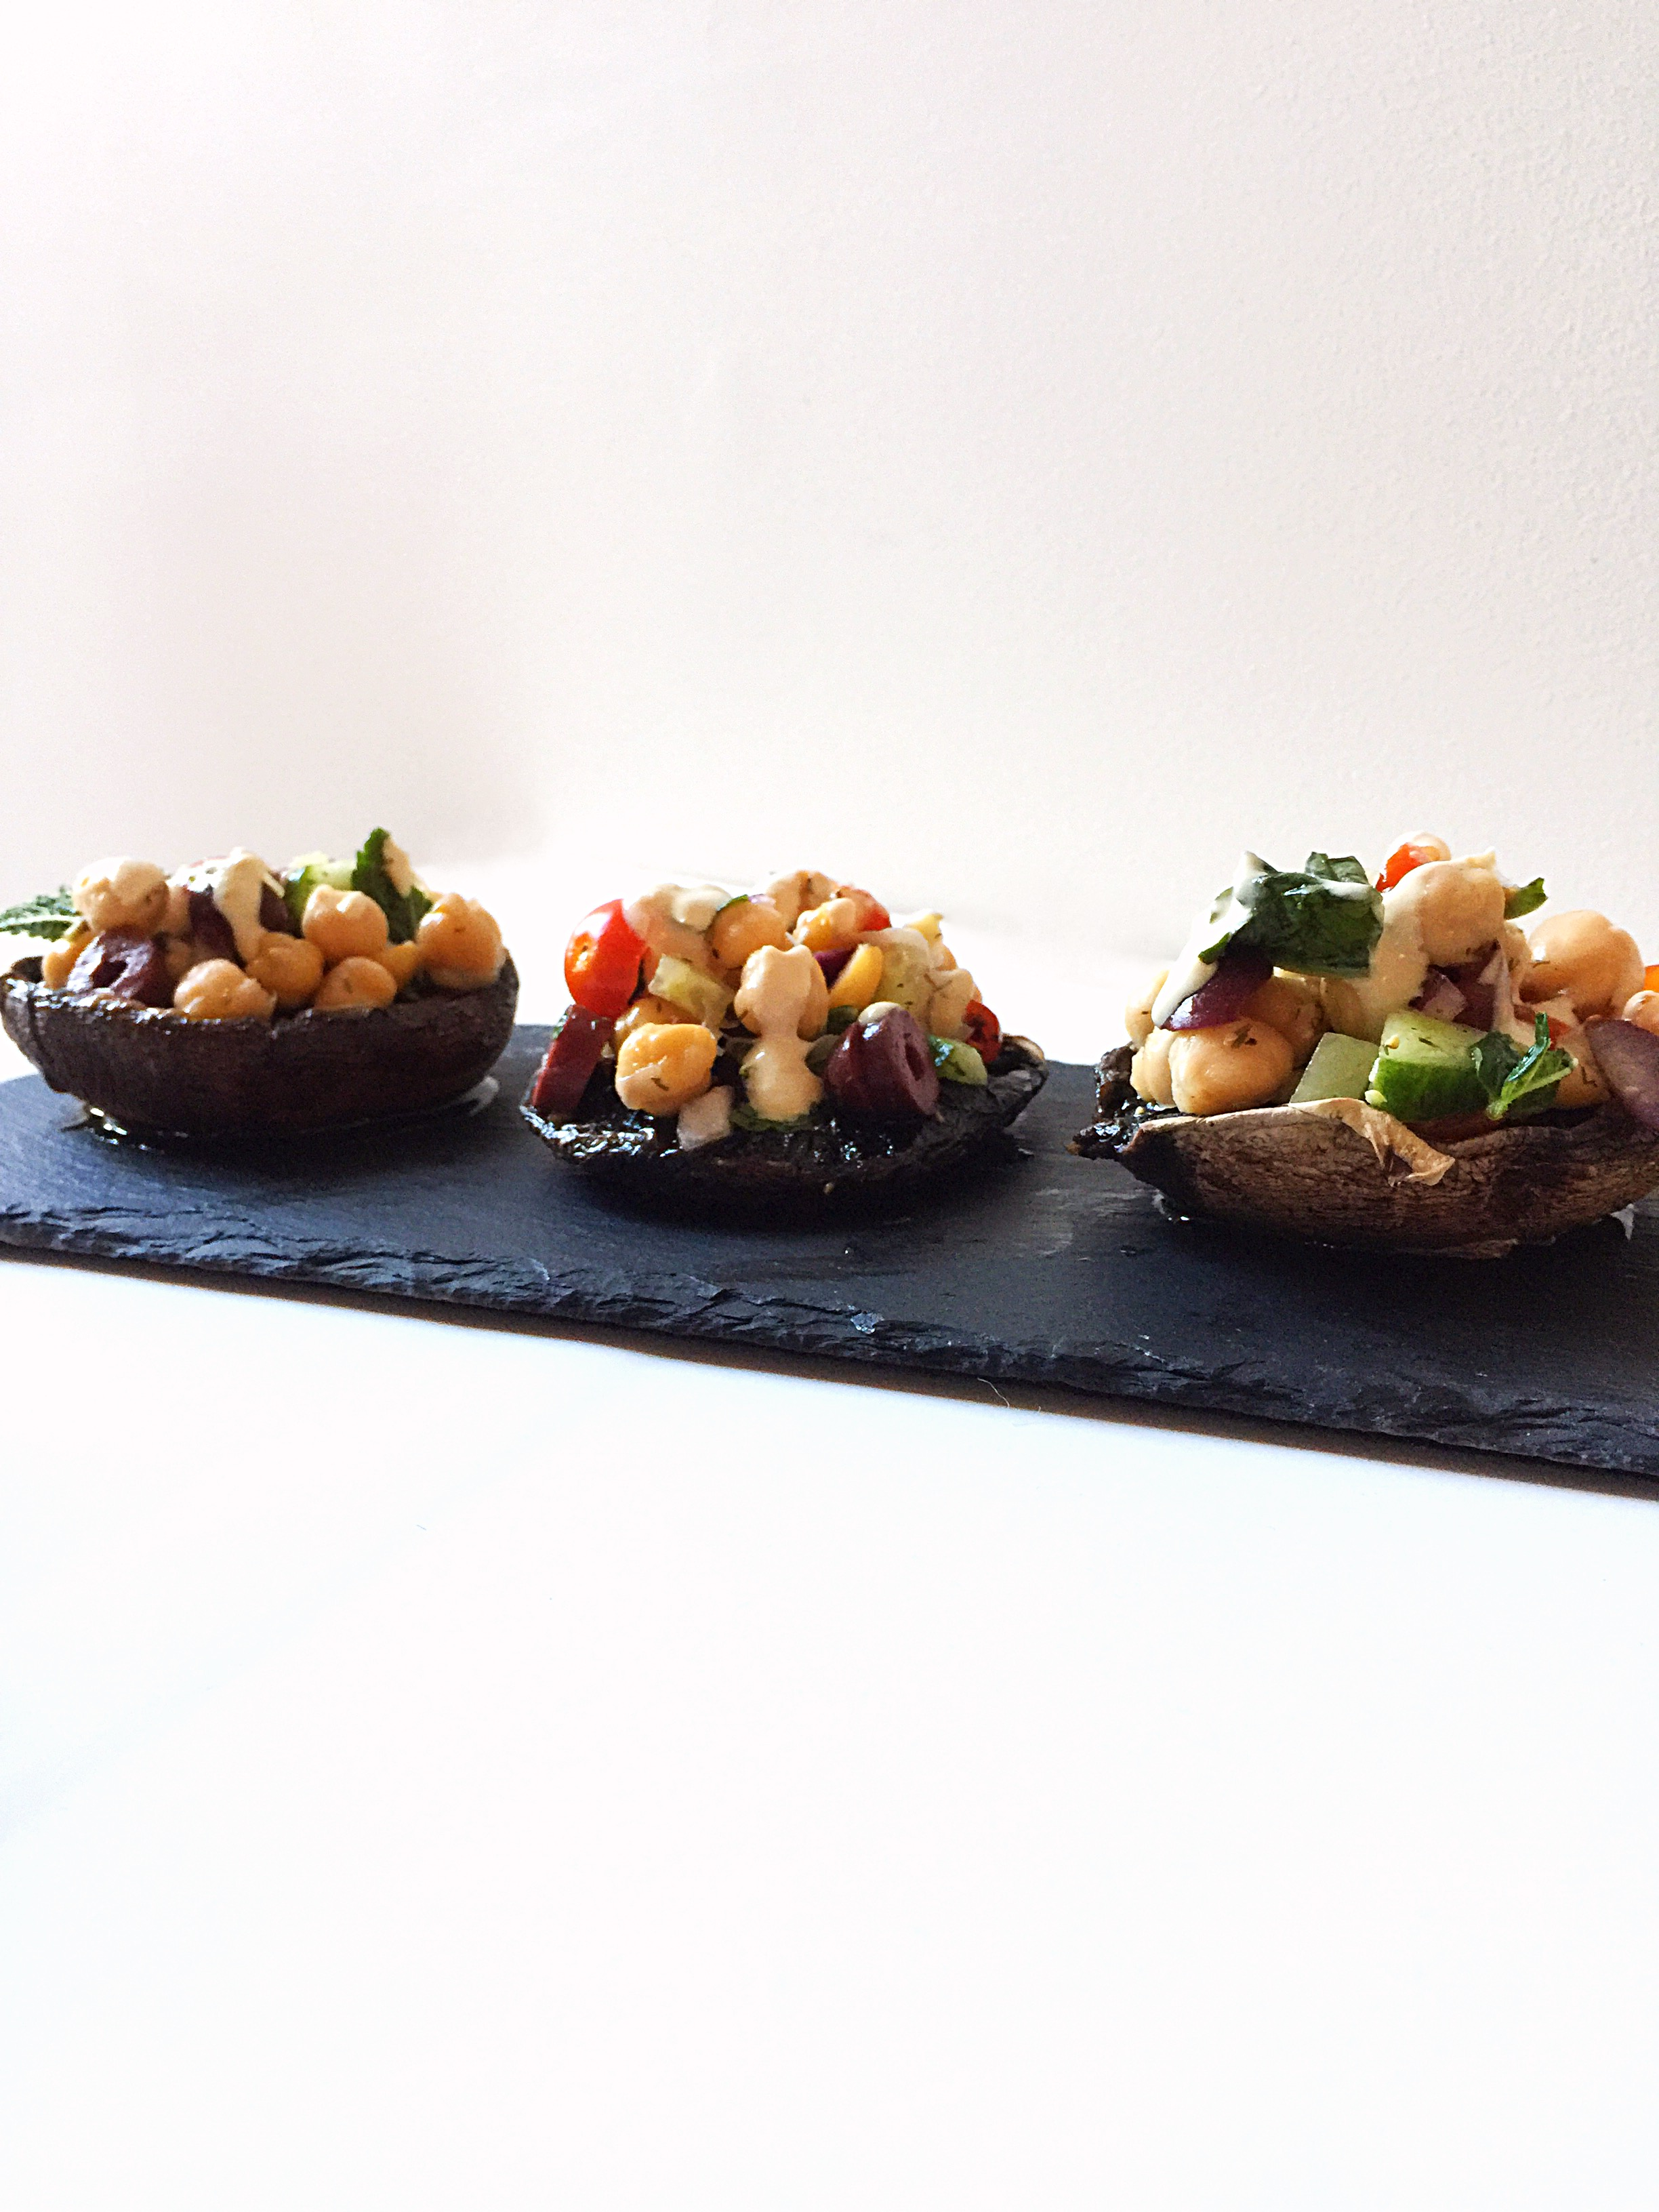 {Vegan} Mediterranean Stuffed Portobello Mushrooms | Whisk and Shout